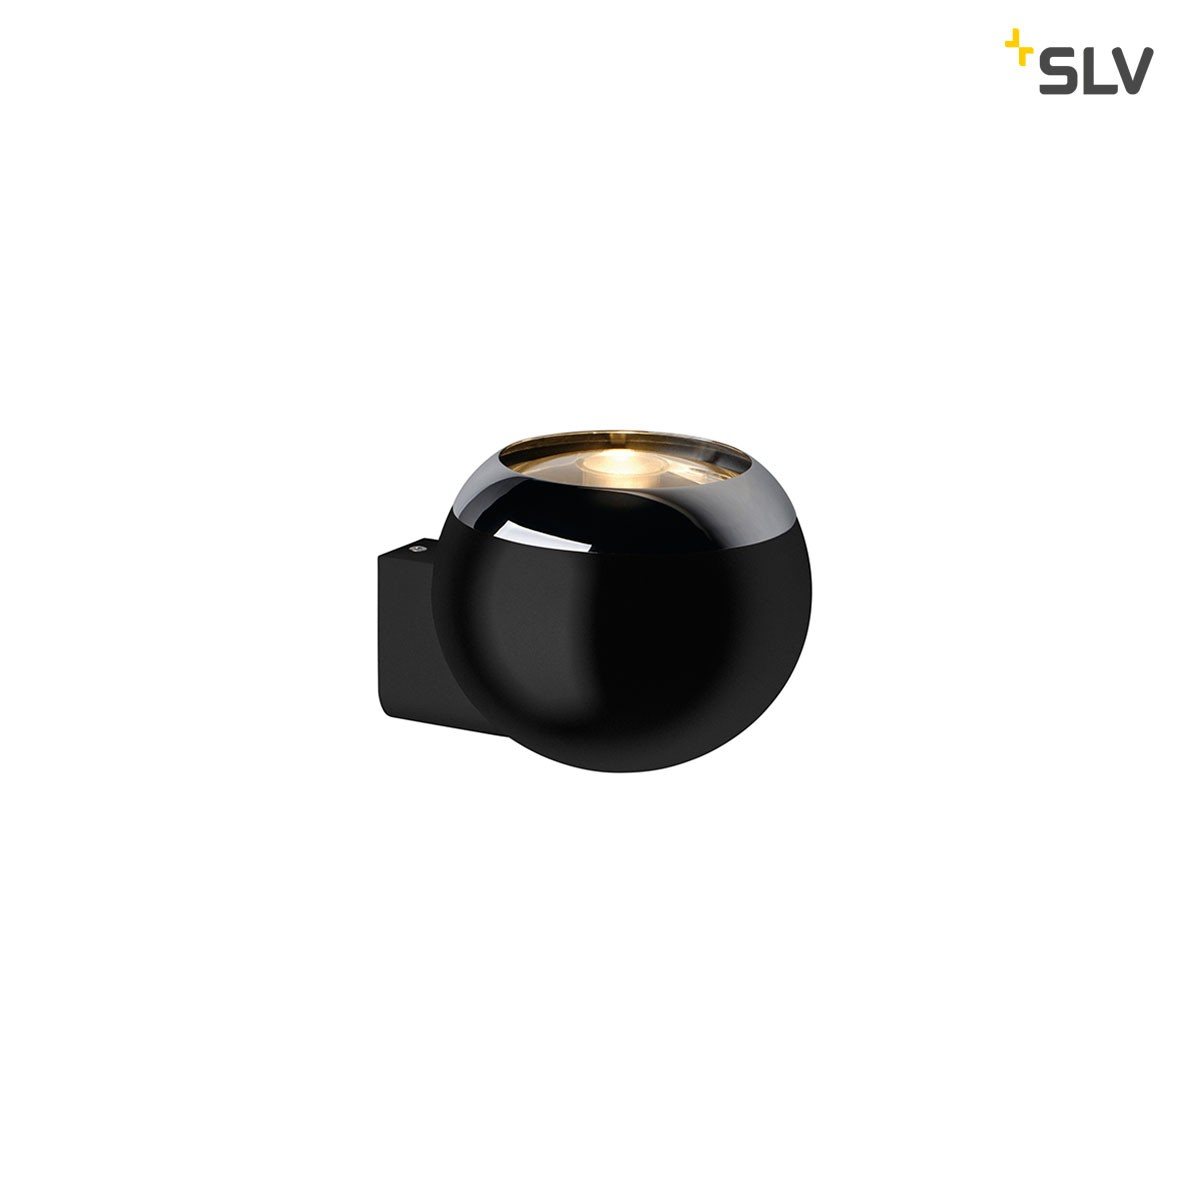 SLV Light Eye Wandleuchte, schwarz - Chrom